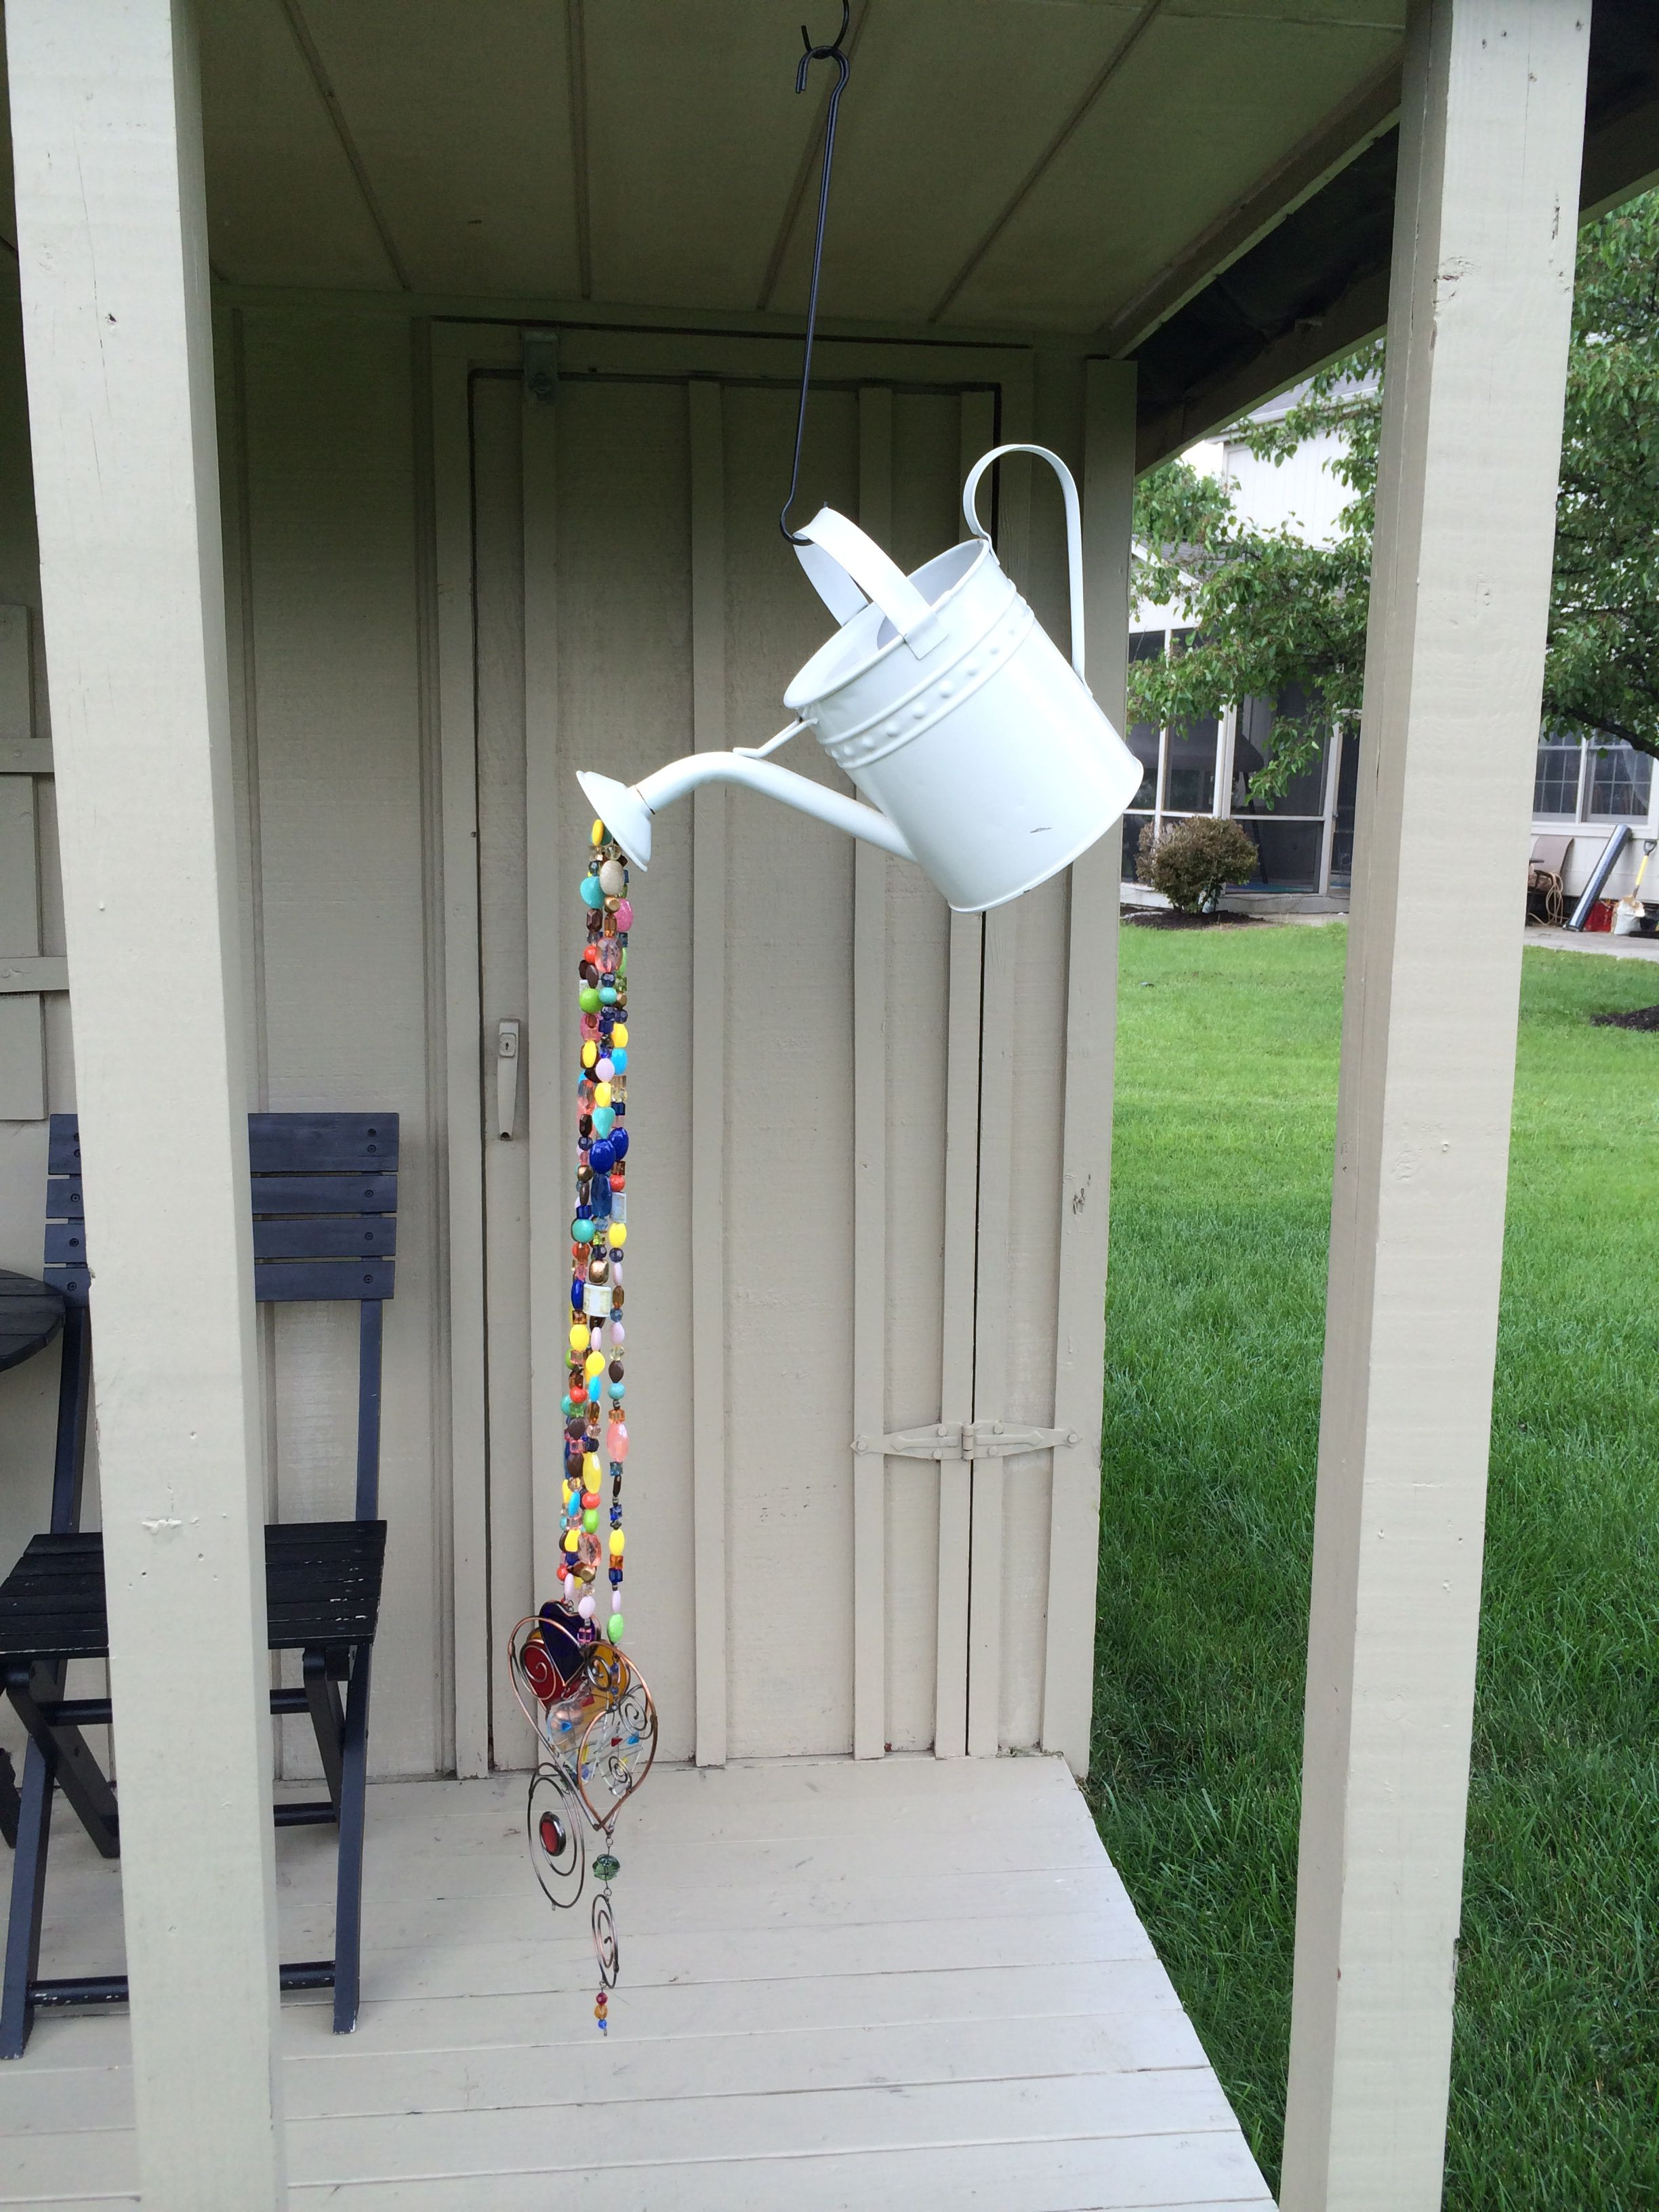 3 Easy Diy Storage Ideas For Small Kitchen: 20 Unique DIY Wind Chimes